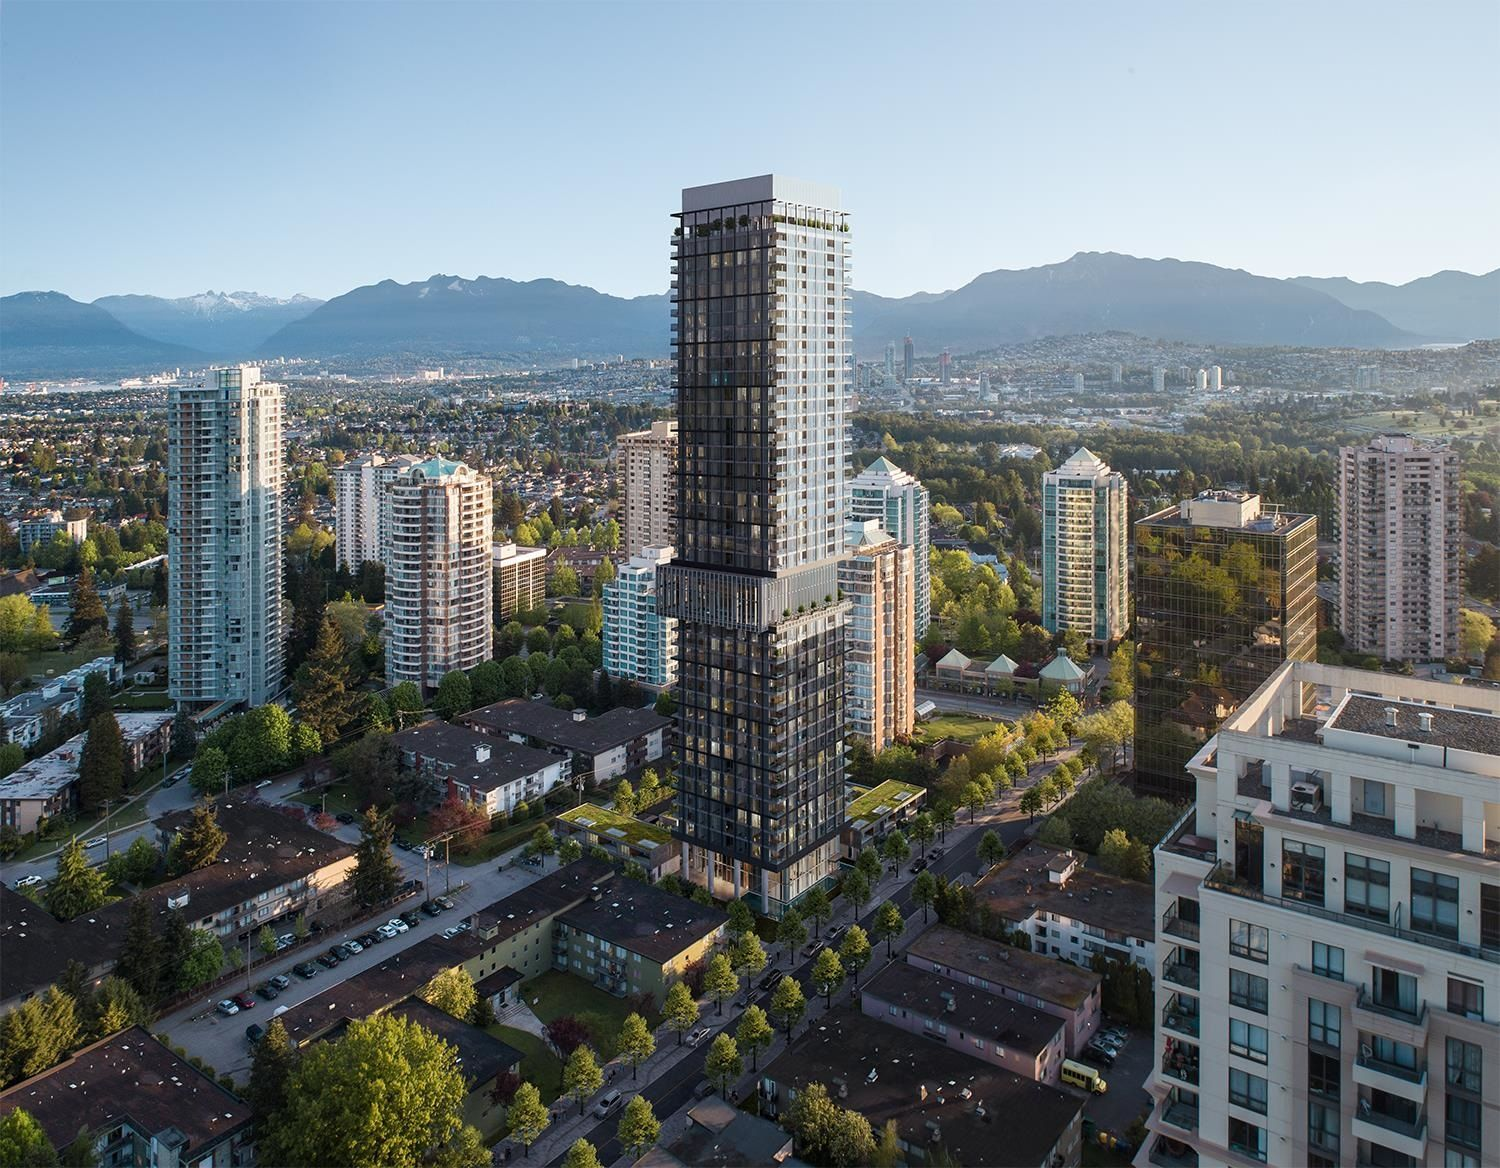 """Main Photo: 101 5987 WILSON Avenue in Burnaby: Metrotown Condo for sale in """"Central Park House"""" (Burnaby South)  : MLS®# R2614397"""